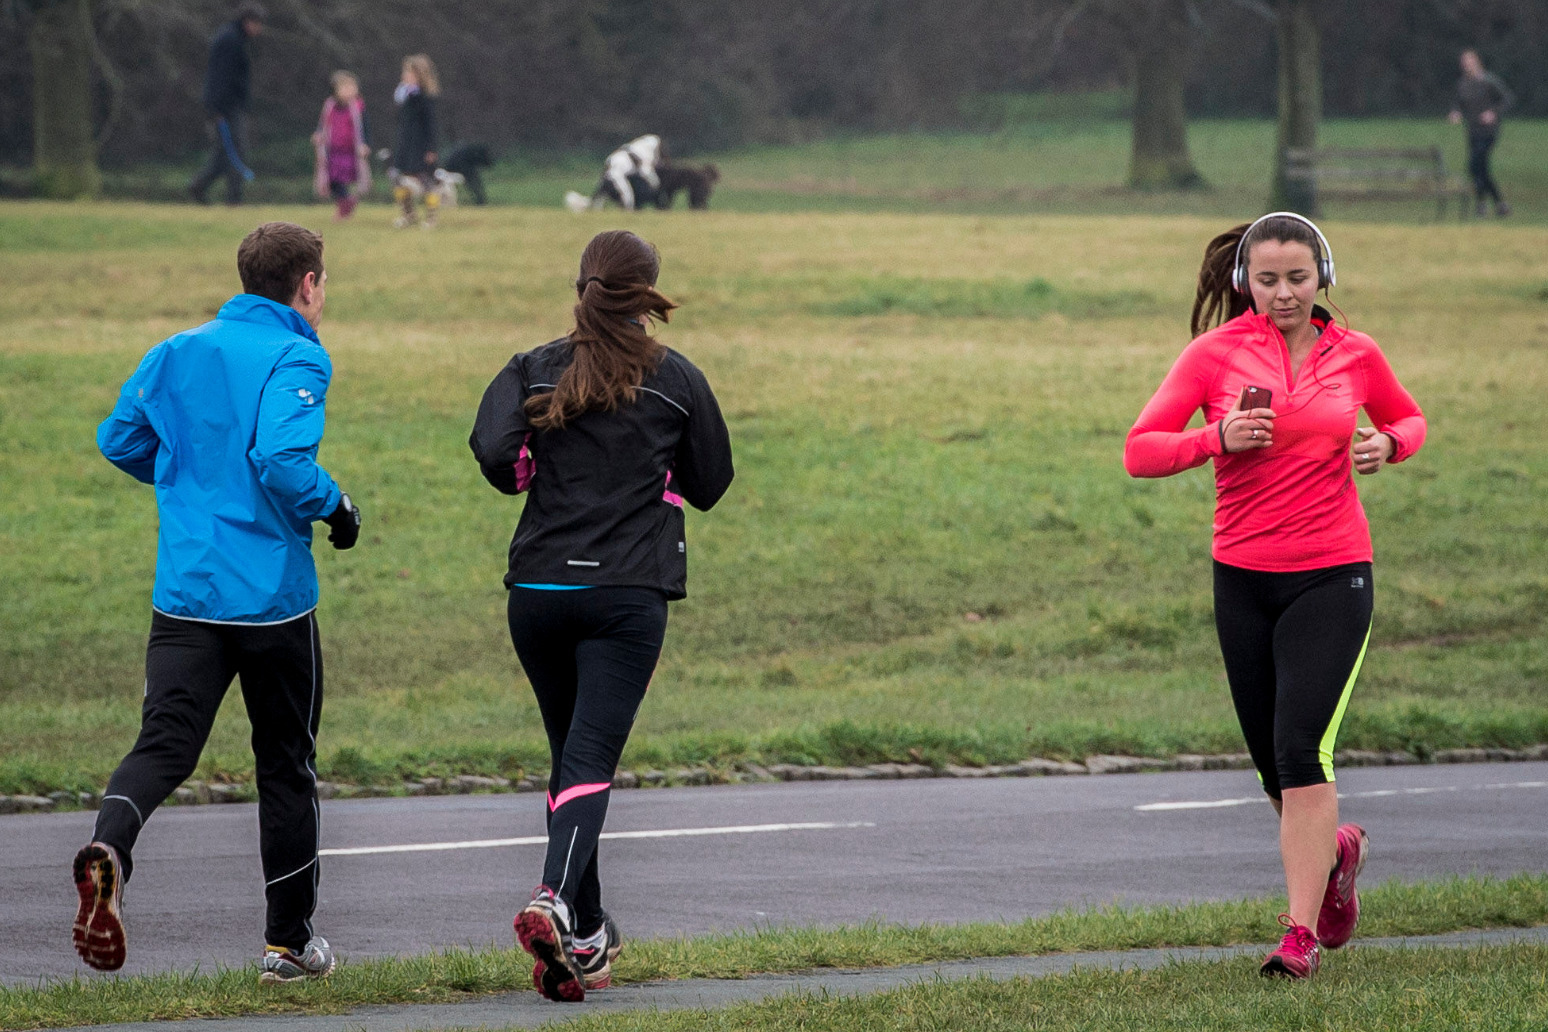 BENEFITS OF \'SOCIAL PRESCRIBING\' OF EXERCISE SMALLER THAN THOUGHT - RESEARCHERS